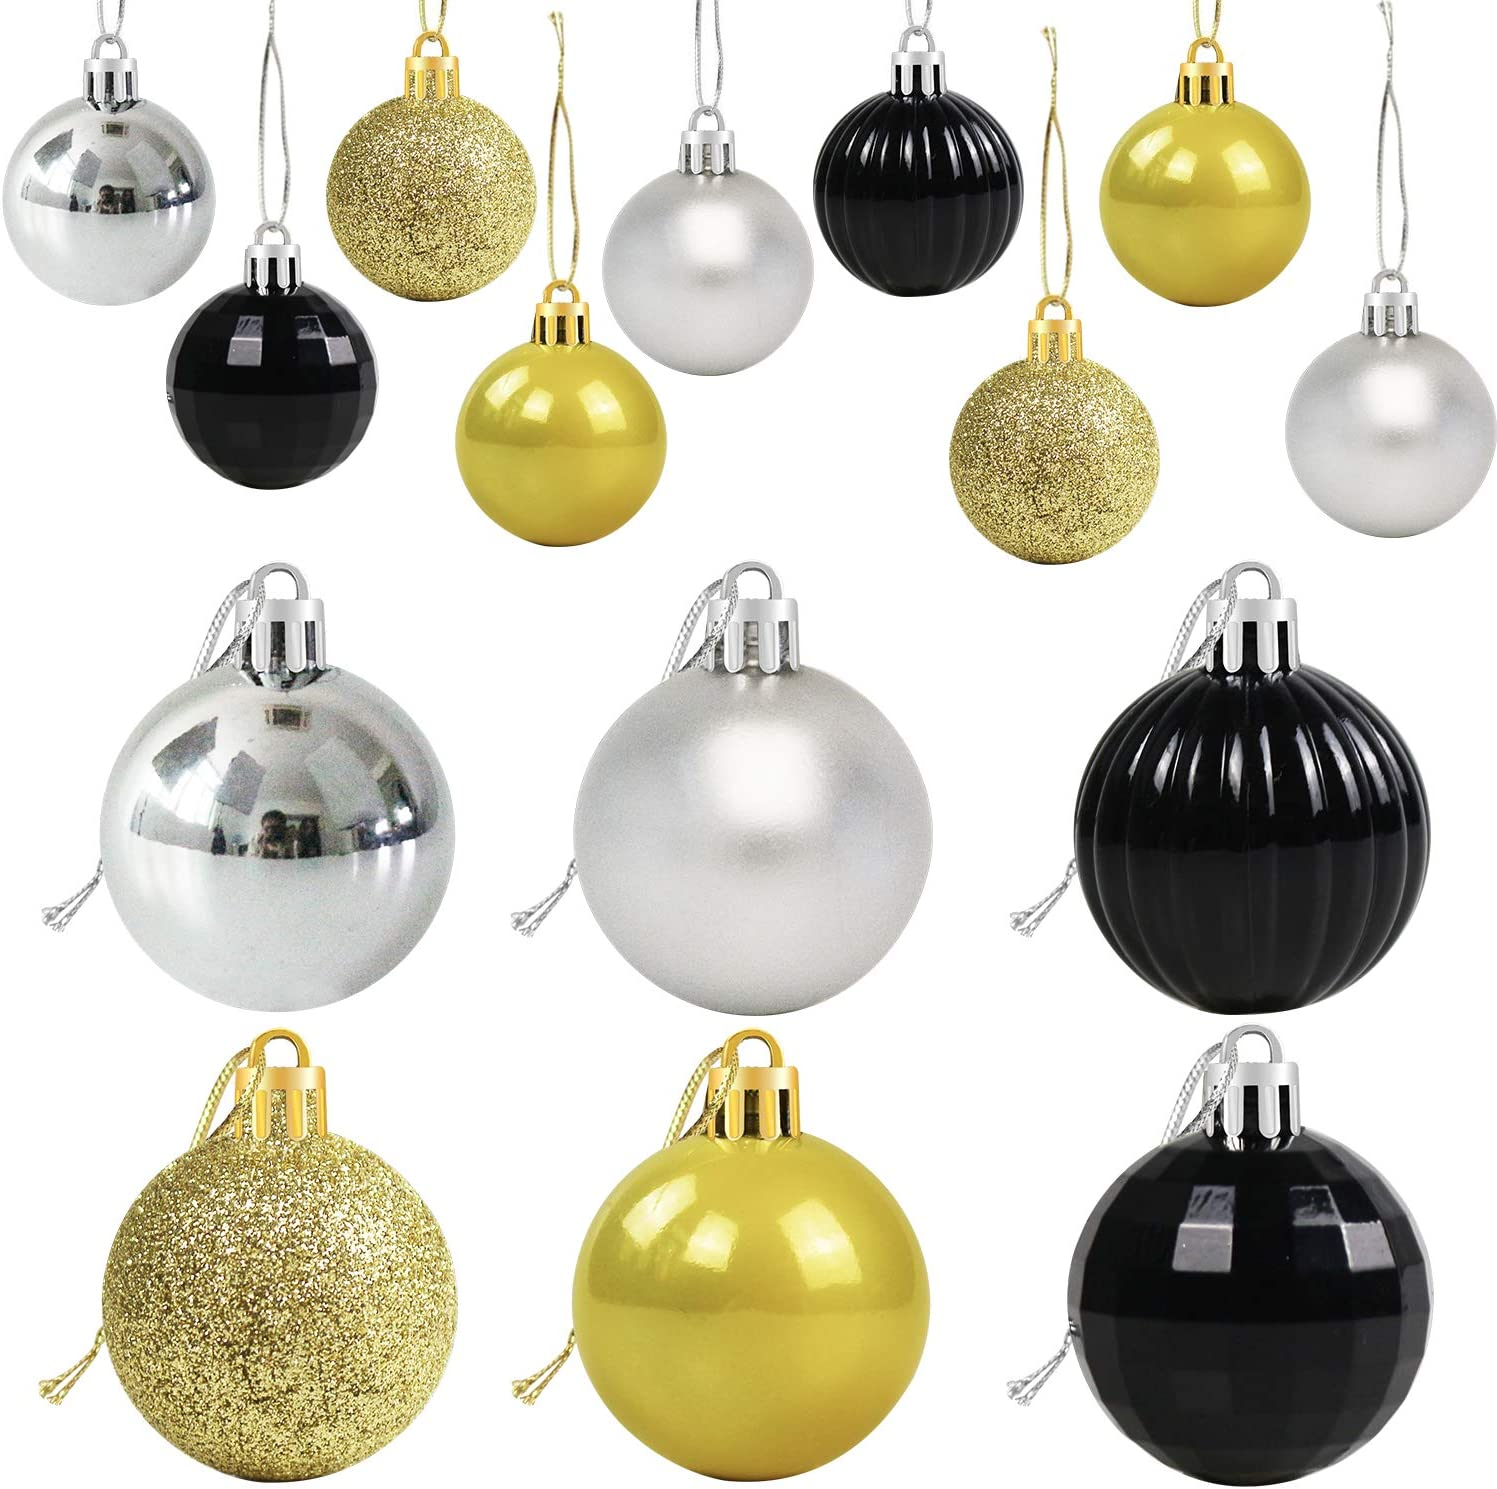 "36ct Christmas Ball Ornaments for Christmas Tree - 6 Style Christmas Tree Ornaments 1.6"" Shatterproof Hanging Ball Decorations - Xmas Holiday Party & Happy New Year Party Decorations (Black and Gold)"